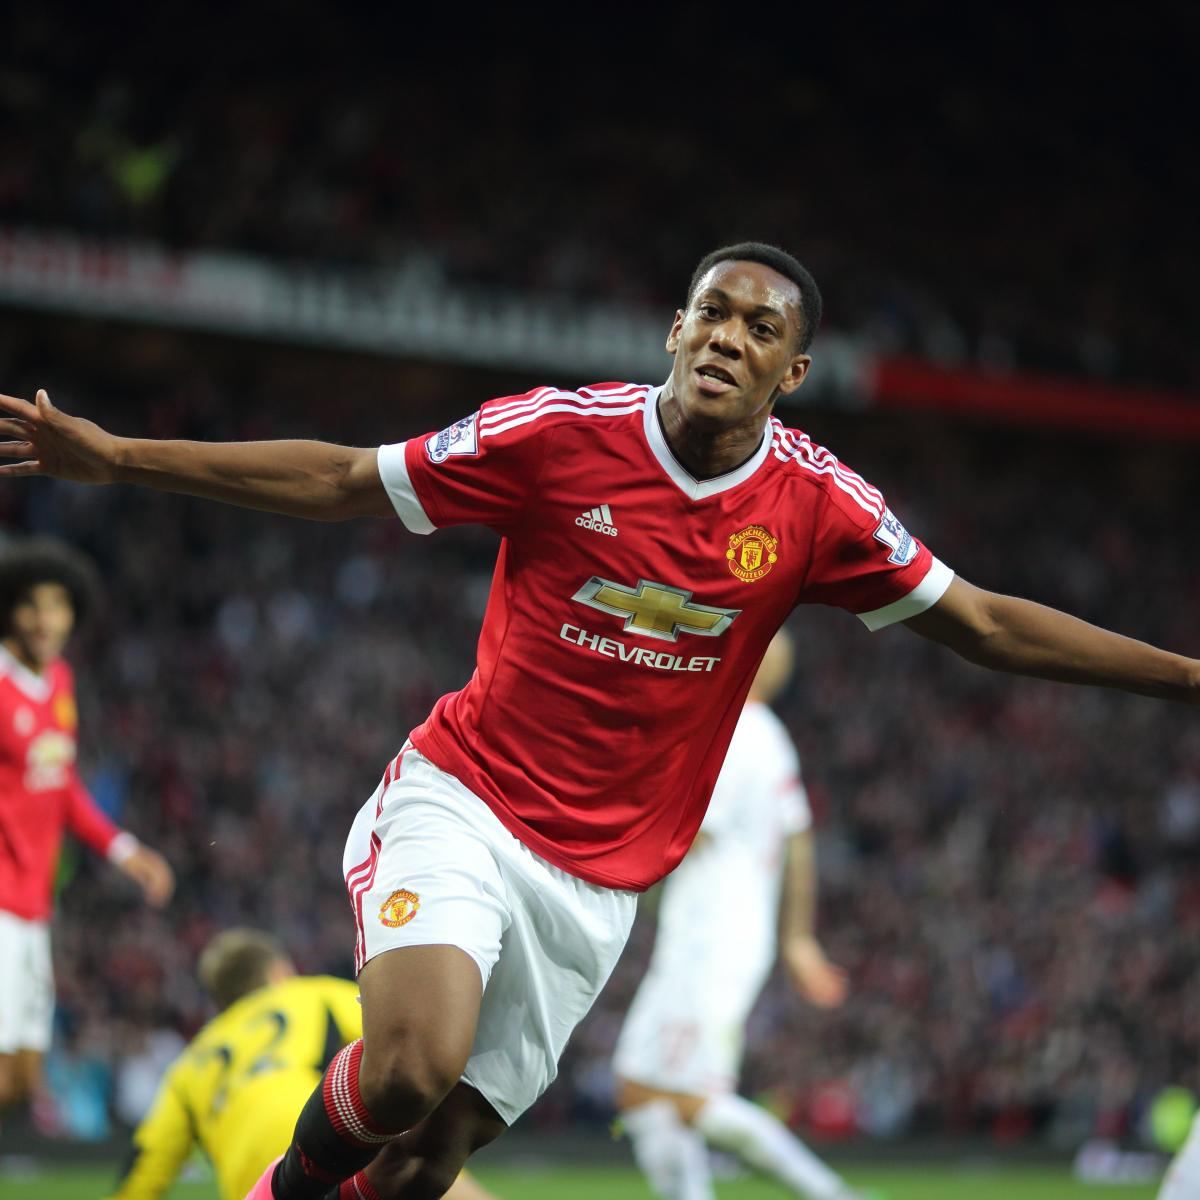 Manchester United S Anthony Martial Talks Debut Goal Vs: How Manchester United Can Get The Best Out Of Anthony